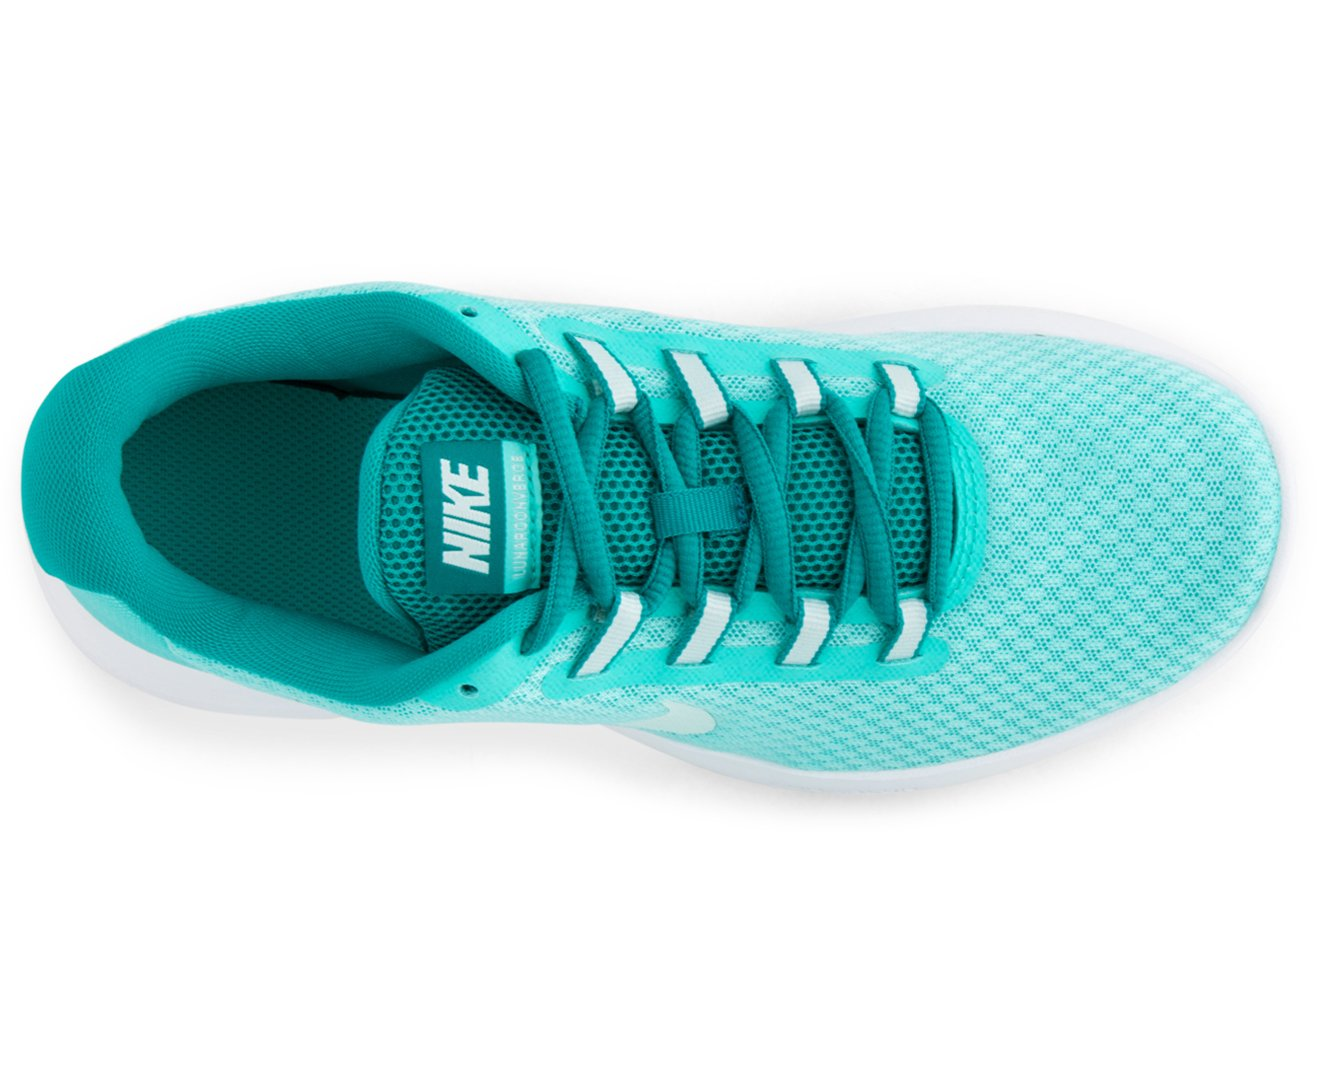 NIKE Womens Lunarconverge Lunarlon Fitness Running Shoes B01MQFM9PS 9.5 B(M) US|Aurora Green Turbo Green 301